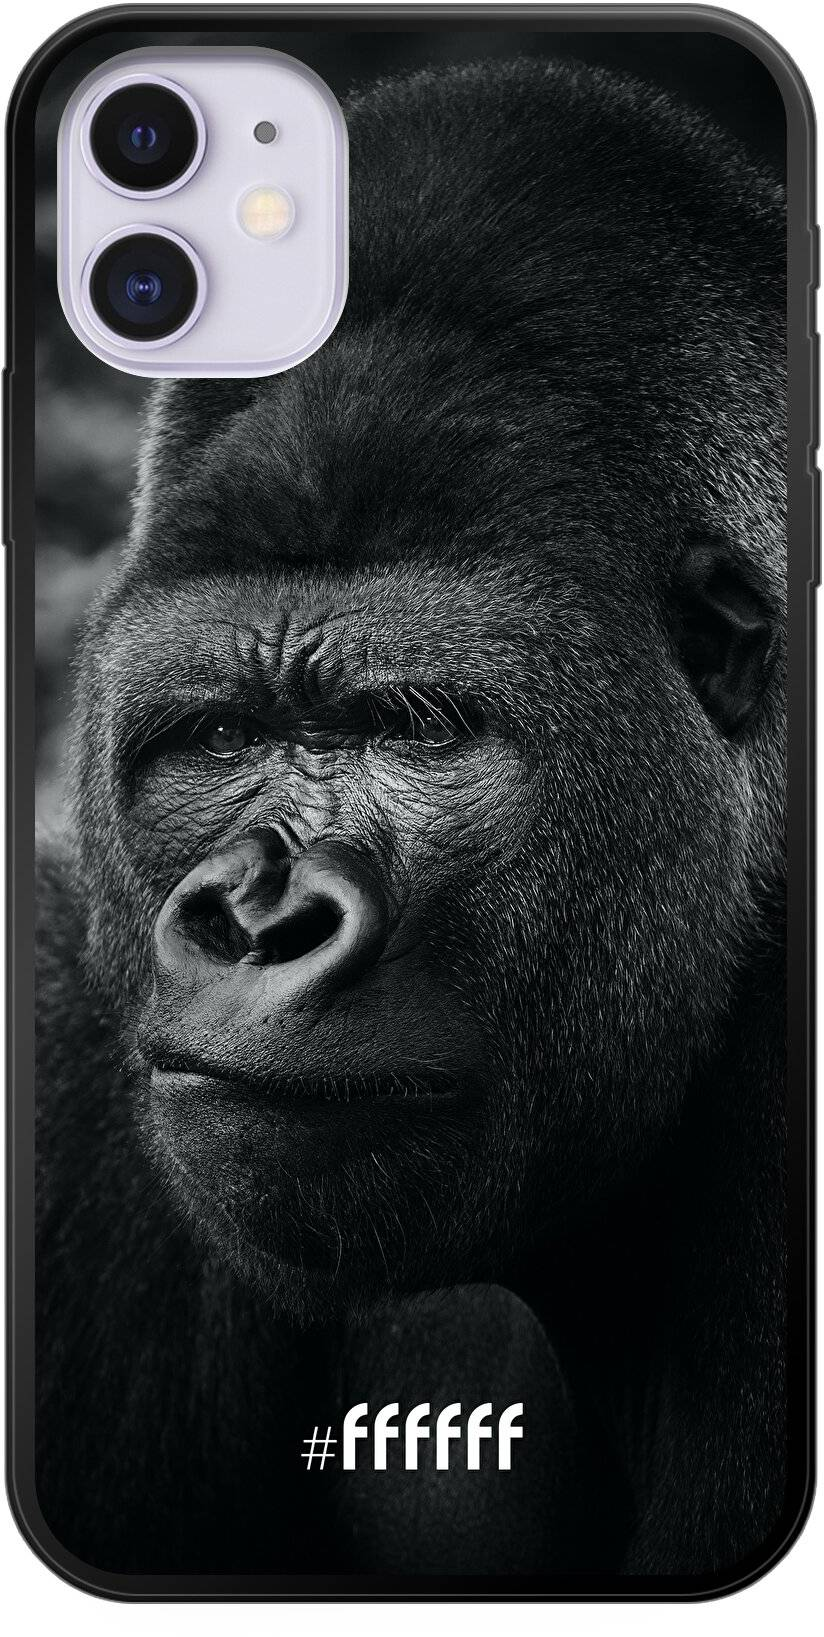 Gorilla iPhone 11